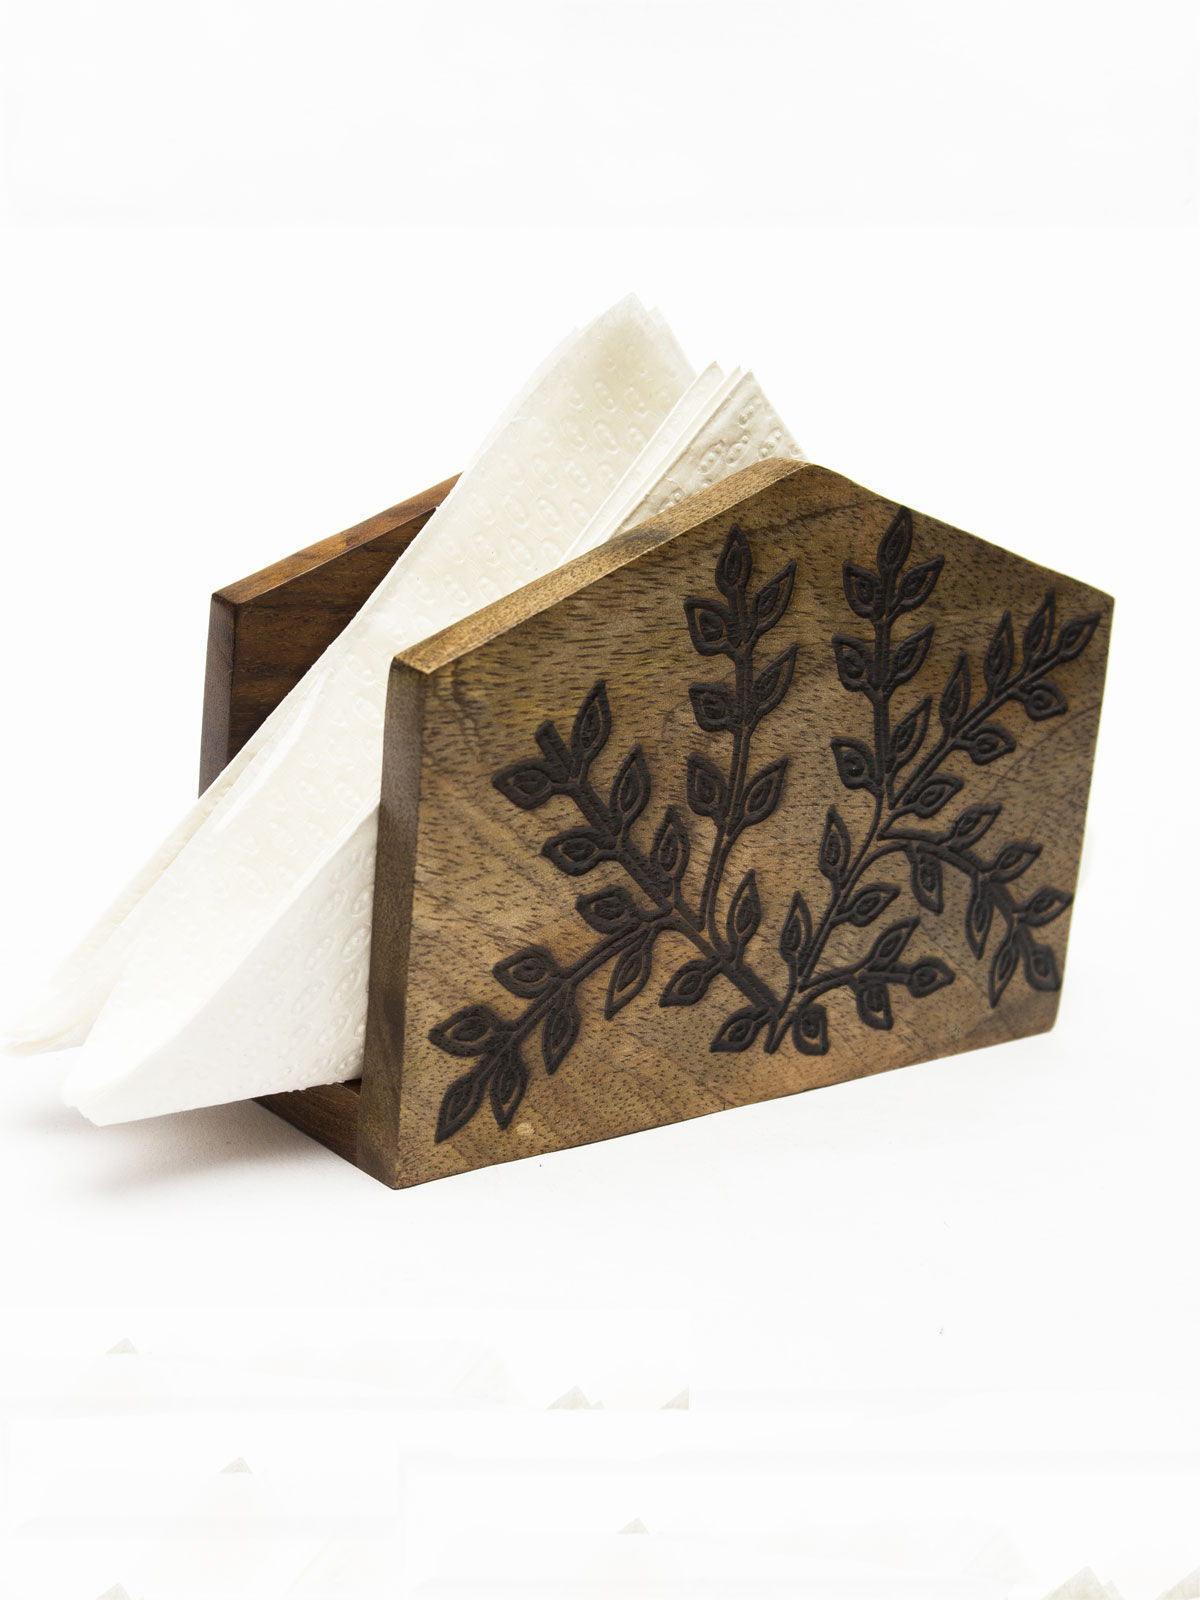 Napkin holder with floral design